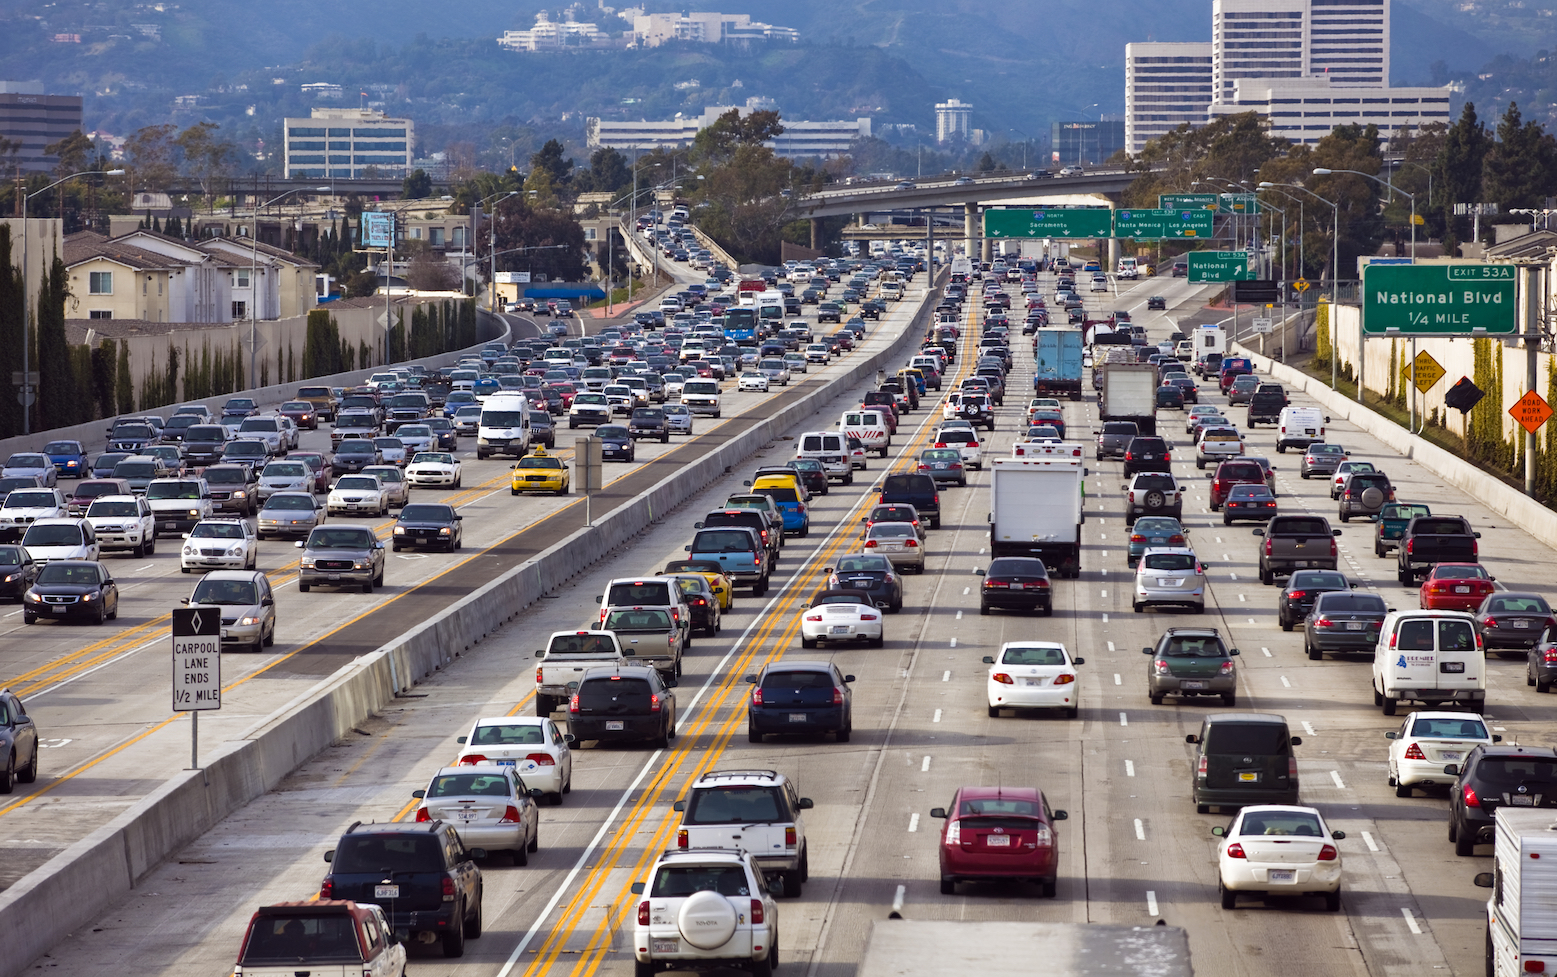 On Thursday, the Trump administration officially announced plans to freeze fuel efficiency standards through 2026.